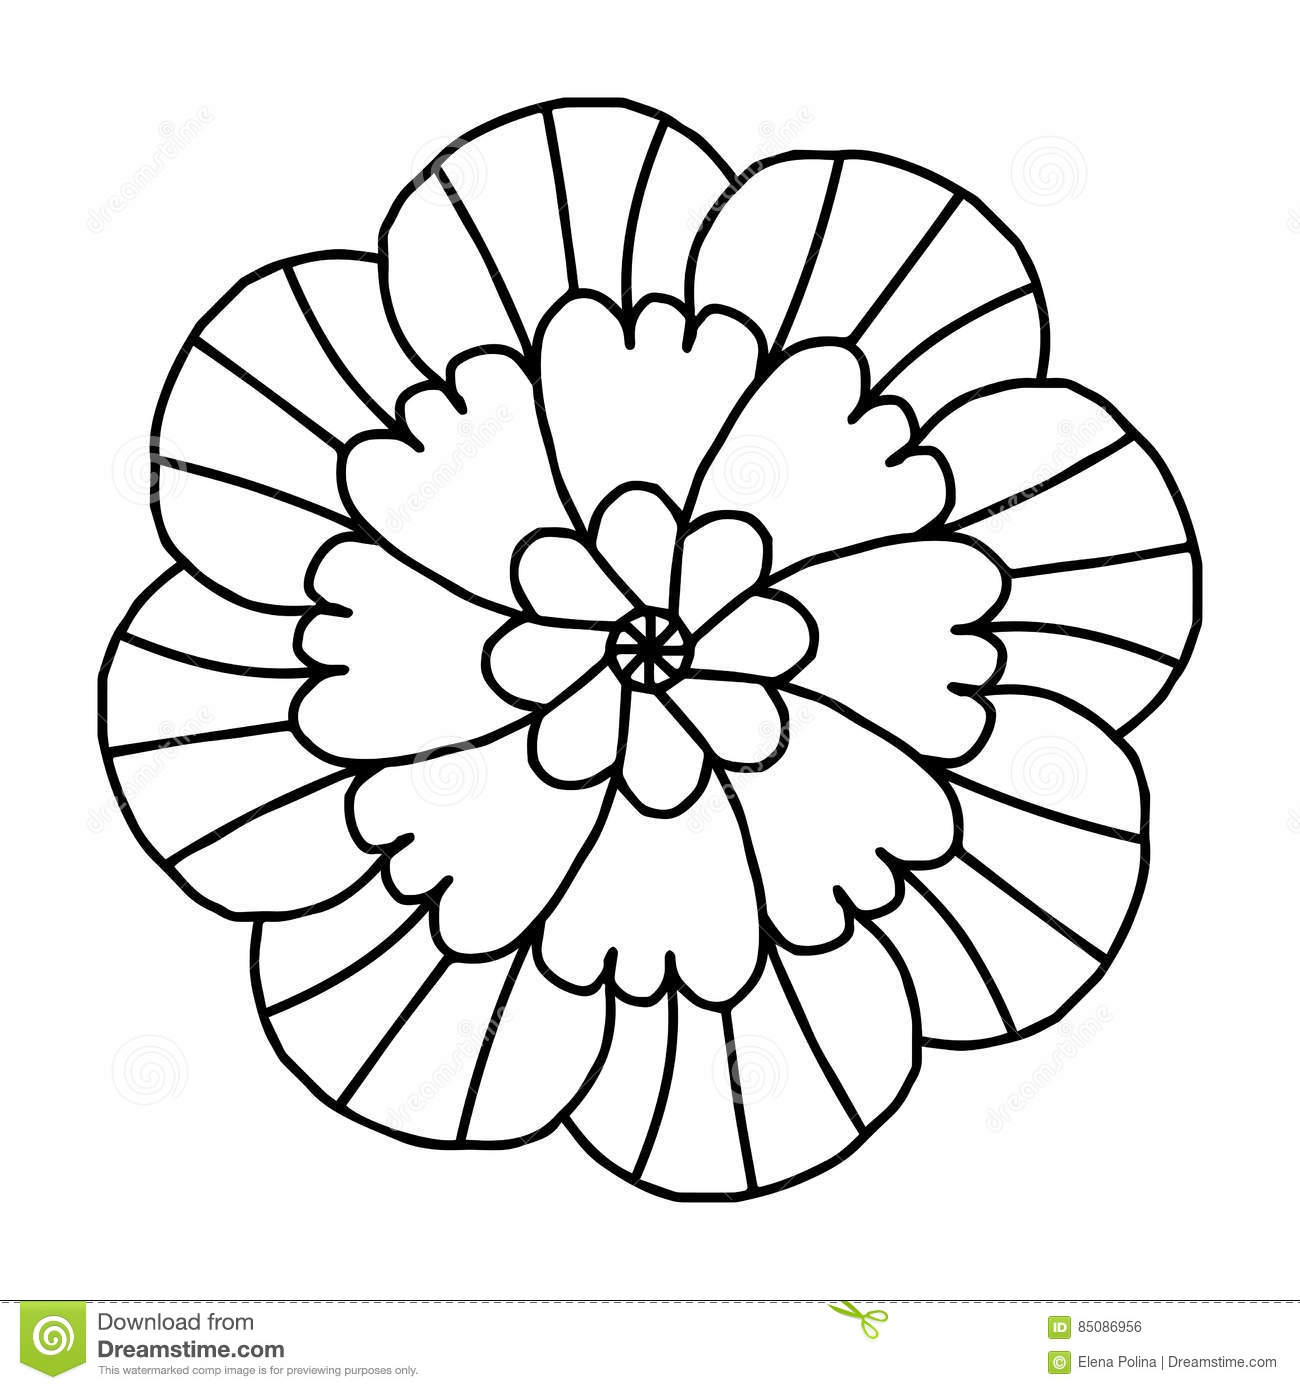 Doodle Flower For Coloring Books Stock Vector - Illustration ...